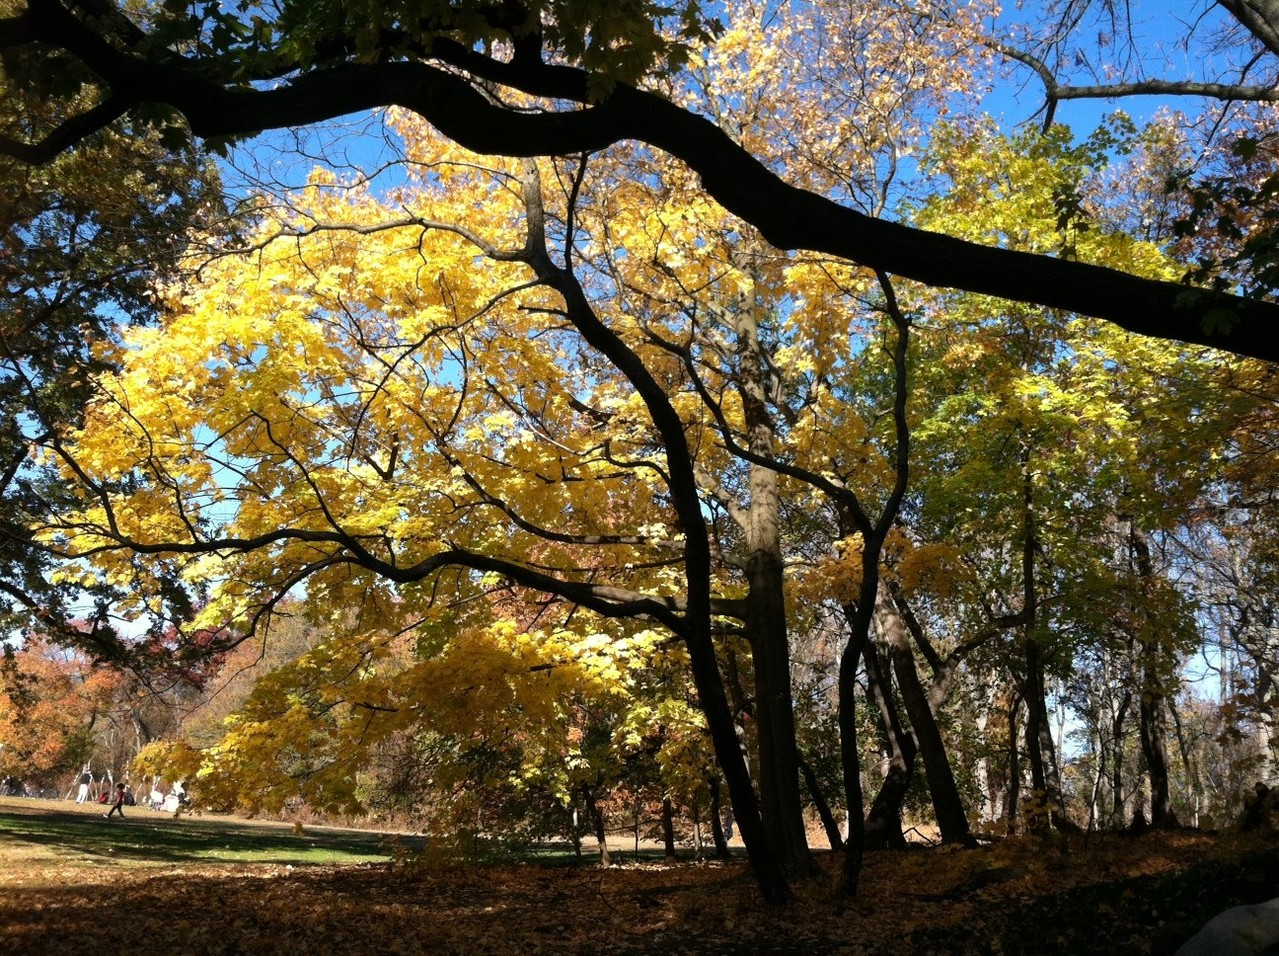 Autumn trees, Prospect Park, Brooklyn, NY